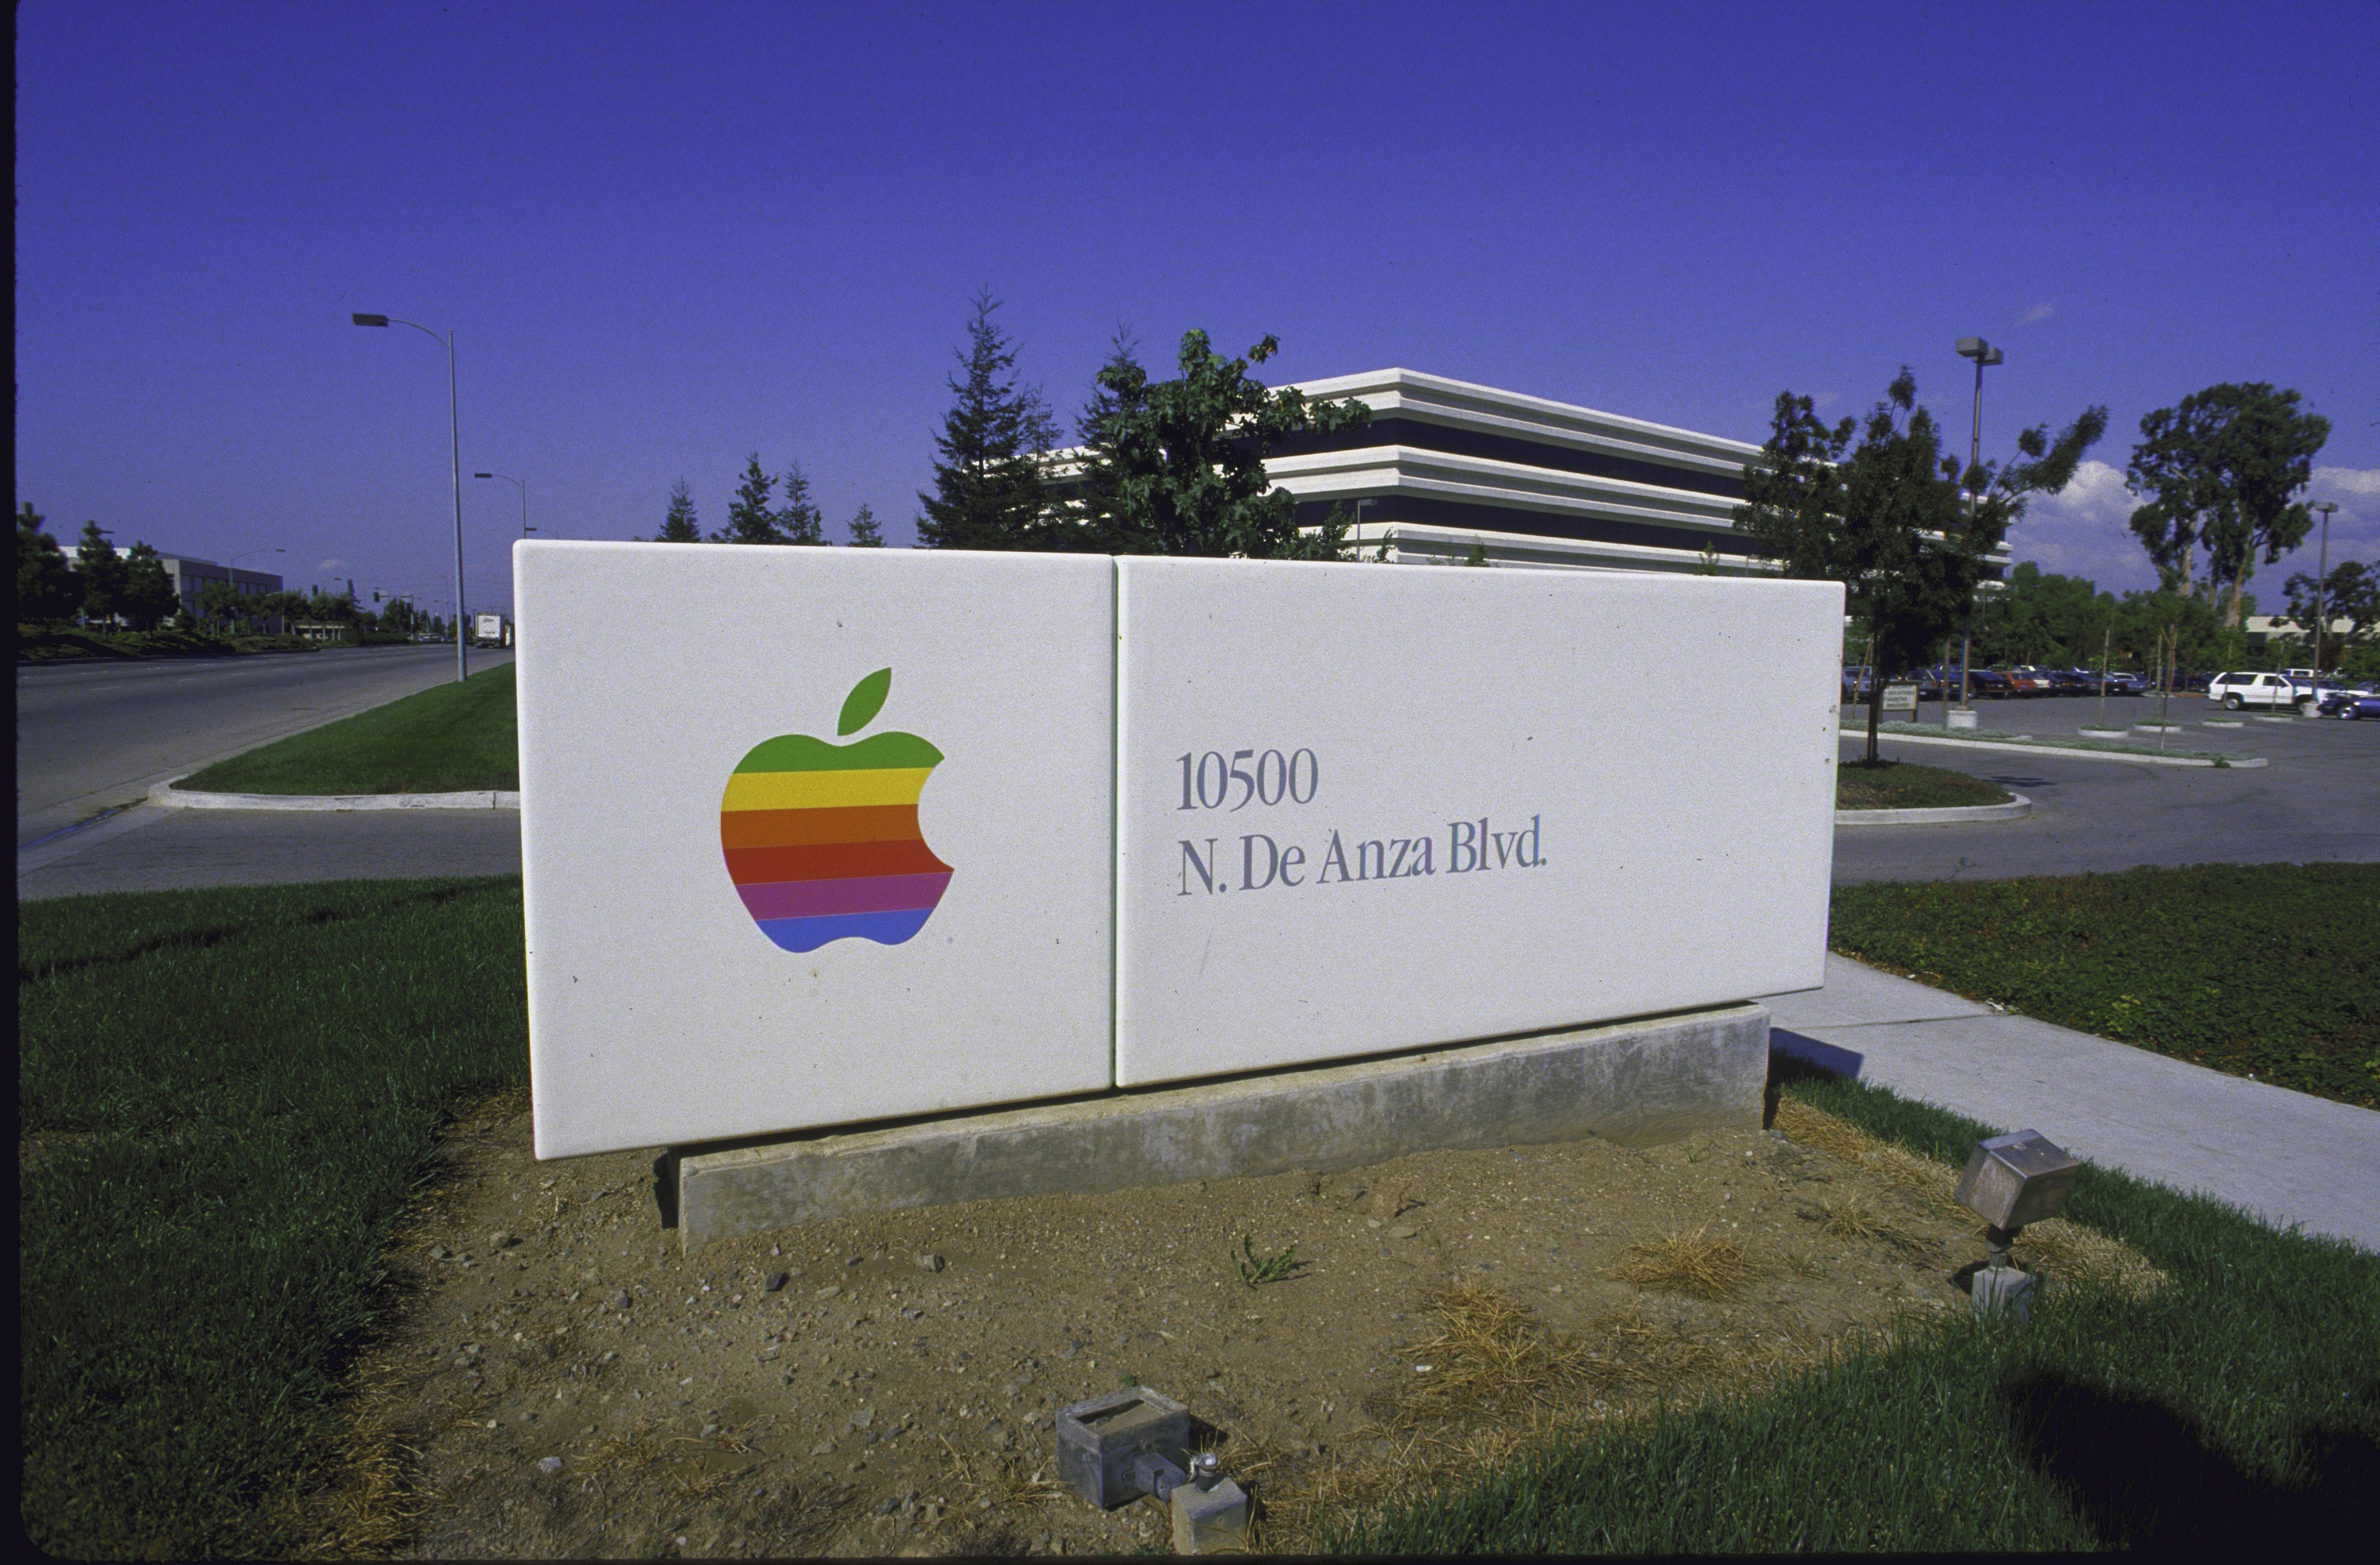 Sign with Apple logo in front of Apple Computer building.